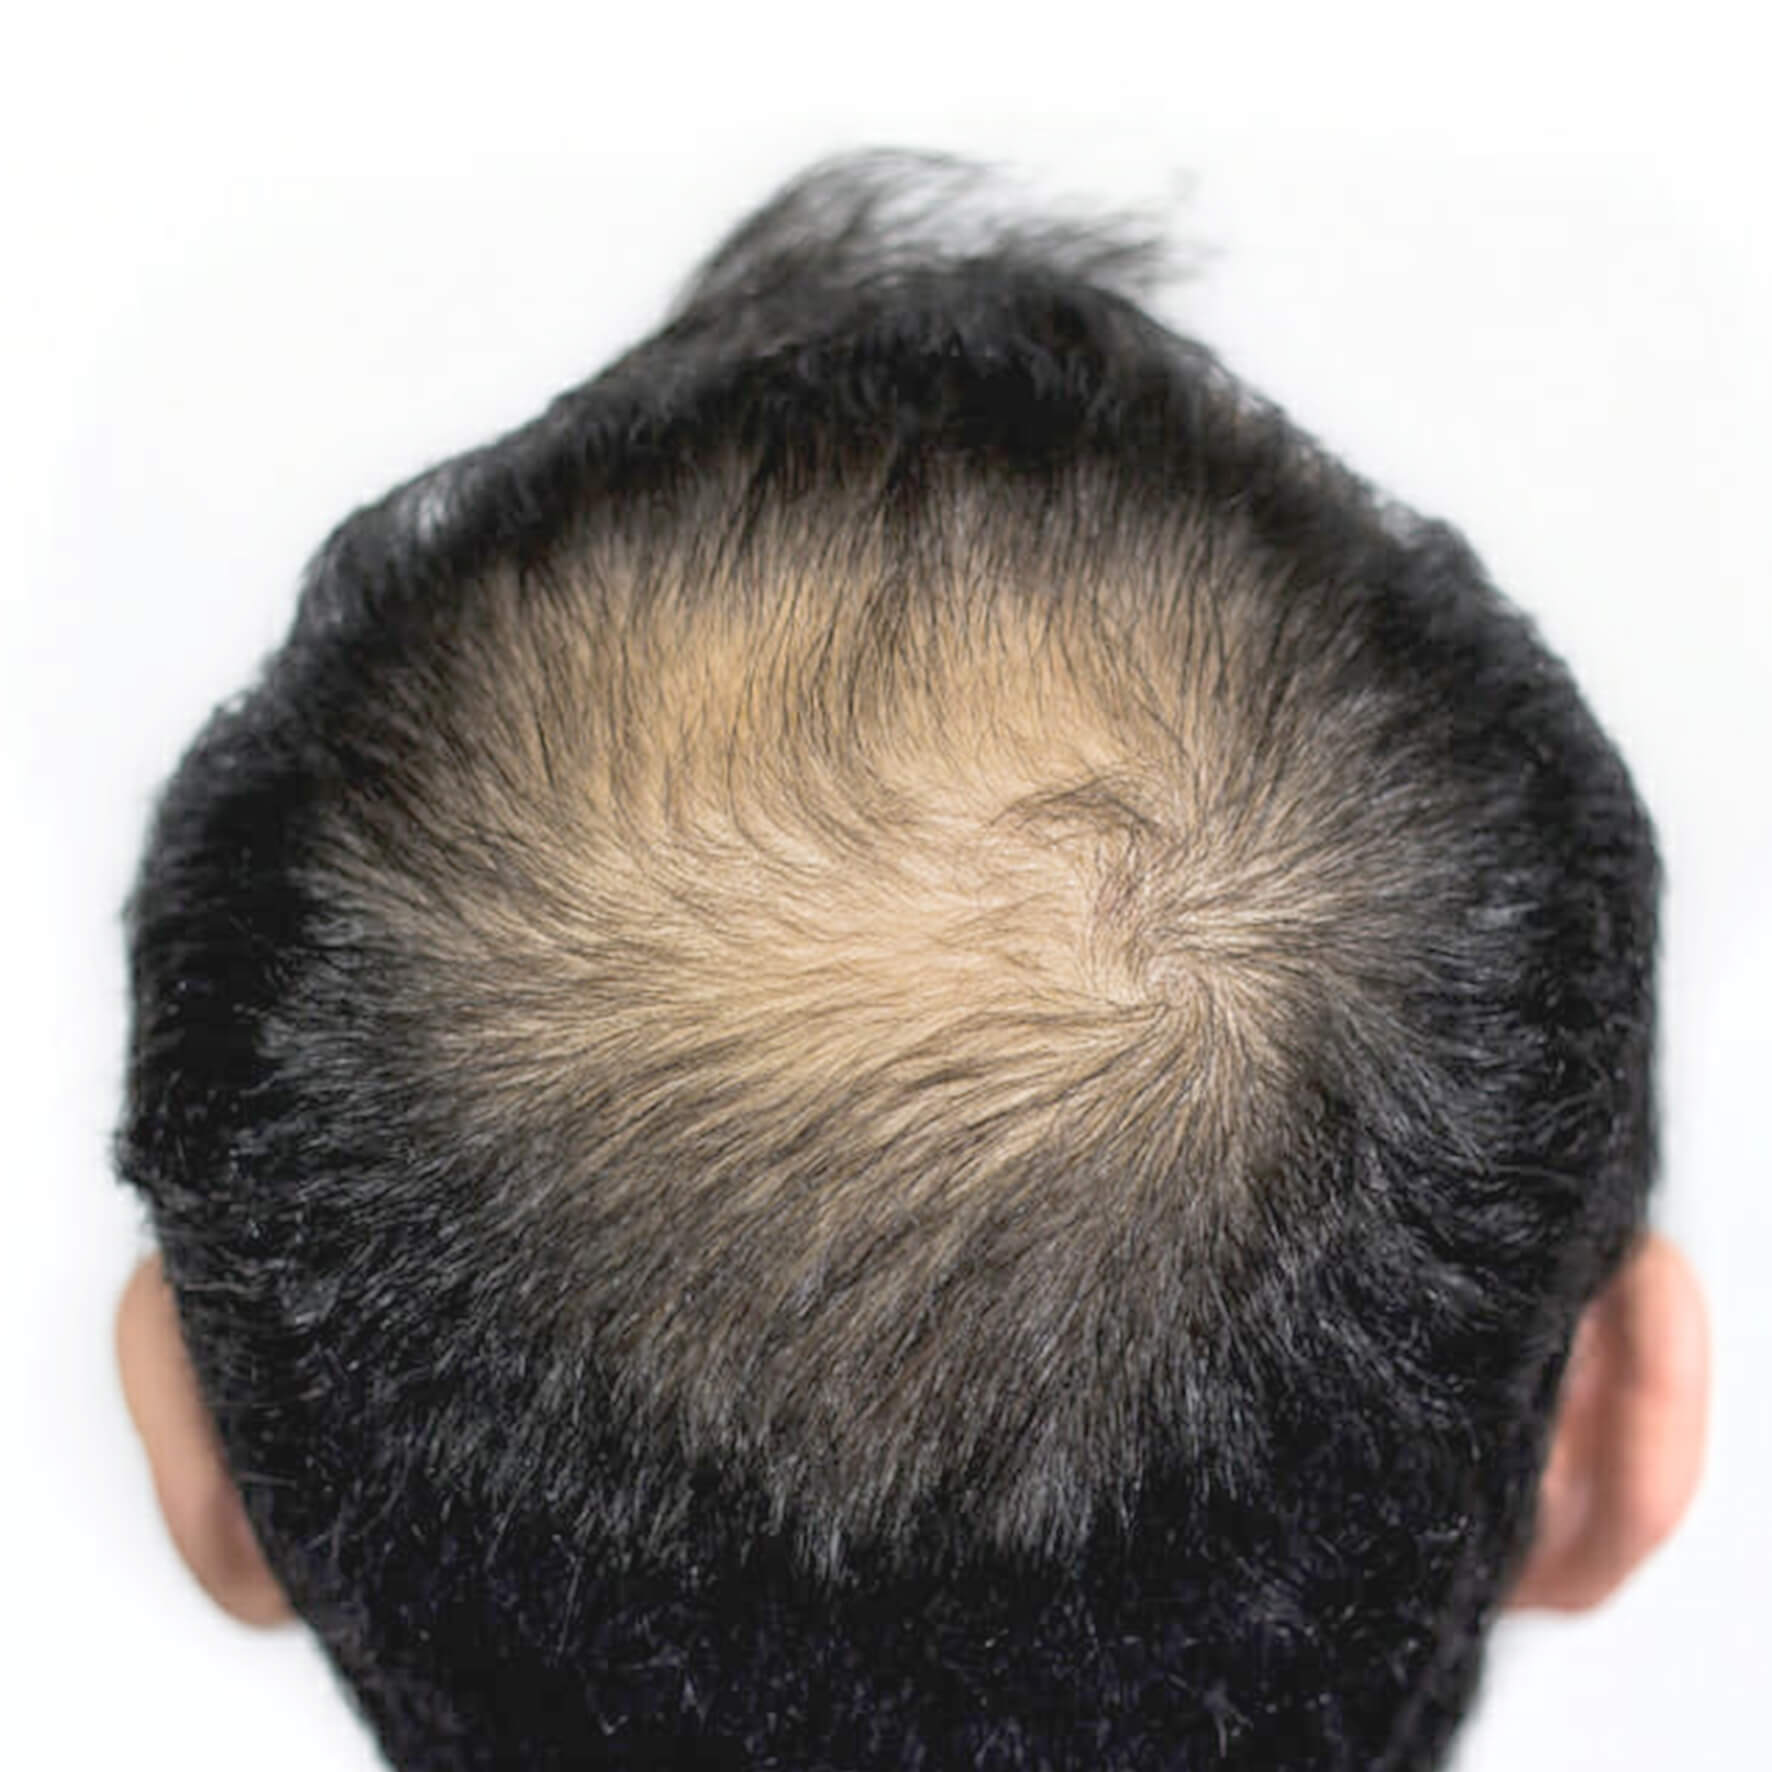 Back of the Head